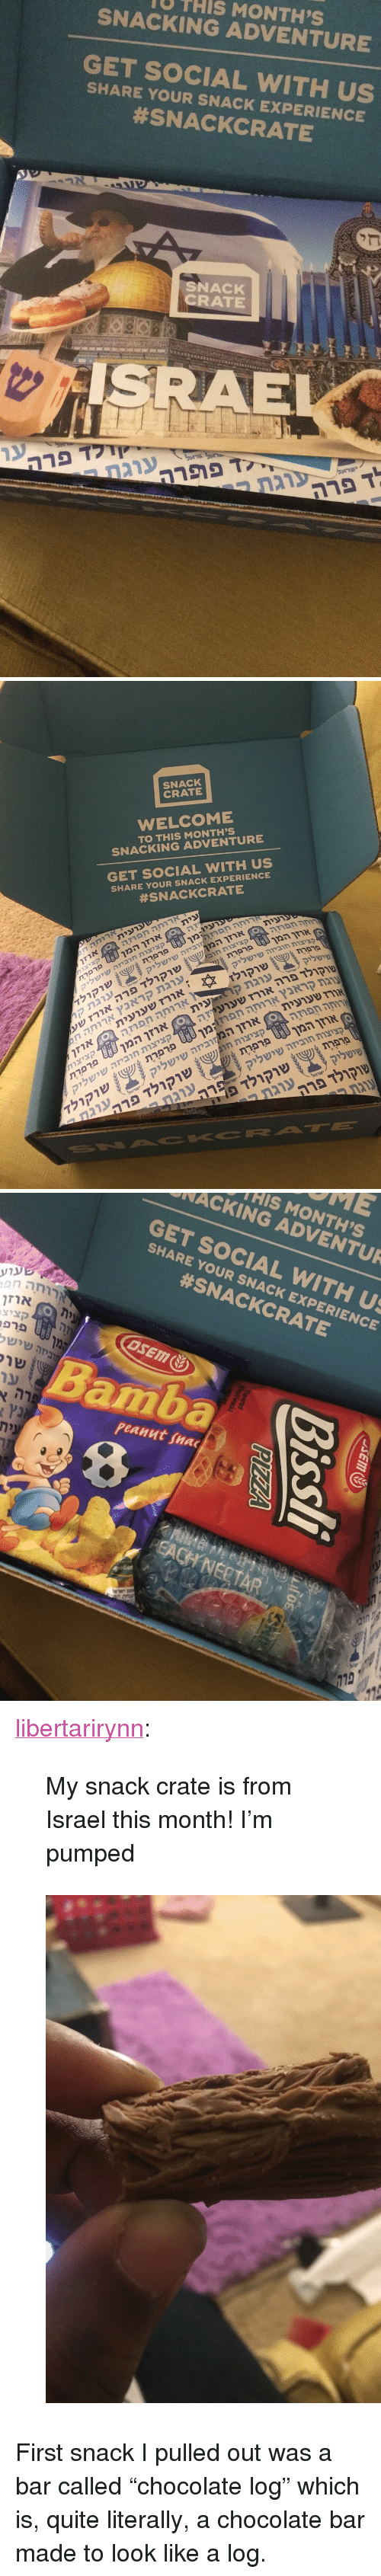 "Snacking: U THIS MONTH'S  SNACKING ADVENTURE  GET SOCIAL WITH US  SHARE YOUR SNACK EXPERIENCE  #SNACKCRATE  SNACK  CRATE  SRAE   SNACK  CRATE  WELCOME  TO THIS MONTH'S  SNACKING ADVENTURE  GET SOCIAL WITH US  SHARE YOUR SNACK EXPERIENCE  #SNACKCRATE  עית  ארזו  פרפרתמן  שישליקיזה  פרפרת  שישליחוביזה קציצות  רנית  שוקולד  שעאורז  ארז  חפוזהרחה  ארזי  קראנץעוגת  שעועיתאורז  חפרזהארוחה  שישליקחוביזה ציצות  פרפרת  שוקולד  קצי  manארוחה קראנץ וגת  פרפרת  שישליחוביזה קציצות  שישליקיזה המן אוזן שעועית  קציצות  פרפרתהמן אוזן  שישליקחוביזה קציצות  שוקולד  שו( שישליק   HIS MONTH'S  NACKING ADVENTUR  GET SOCIAL WITH U  SHARE YOUR SNACK EXPERIENCE  #SNACKCRATE  ארזו  קציצ  amba  peanut snac  8 <p><a href=""https://libertarirynn.tumblr.com/post/174257765184/my-snack-crate-is-from-israel-this-month-im"" class=""tumblr_blog"">libertarirynn</a>:</p>  <blockquote><p>My snack crate is from Israel this month! I'm pumped</p></blockquote>  <figure class=""tmblr-full"" data-orig-height=""1280"" data-orig-width=""960""><img src=""https://78.media.tumblr.com/df14065f47e8c111d8dc63d2f31b1177/tumblr_inline_p9bc0jGGDh1rw09tq_500.jpg"" data-orig-height=""1280"" data-orig-width=""960""/></figure><p>First snack I pulled out was a bar called ""chocolate log"" which is, quite literally, a chocolate bar made to look like a log.</p>"